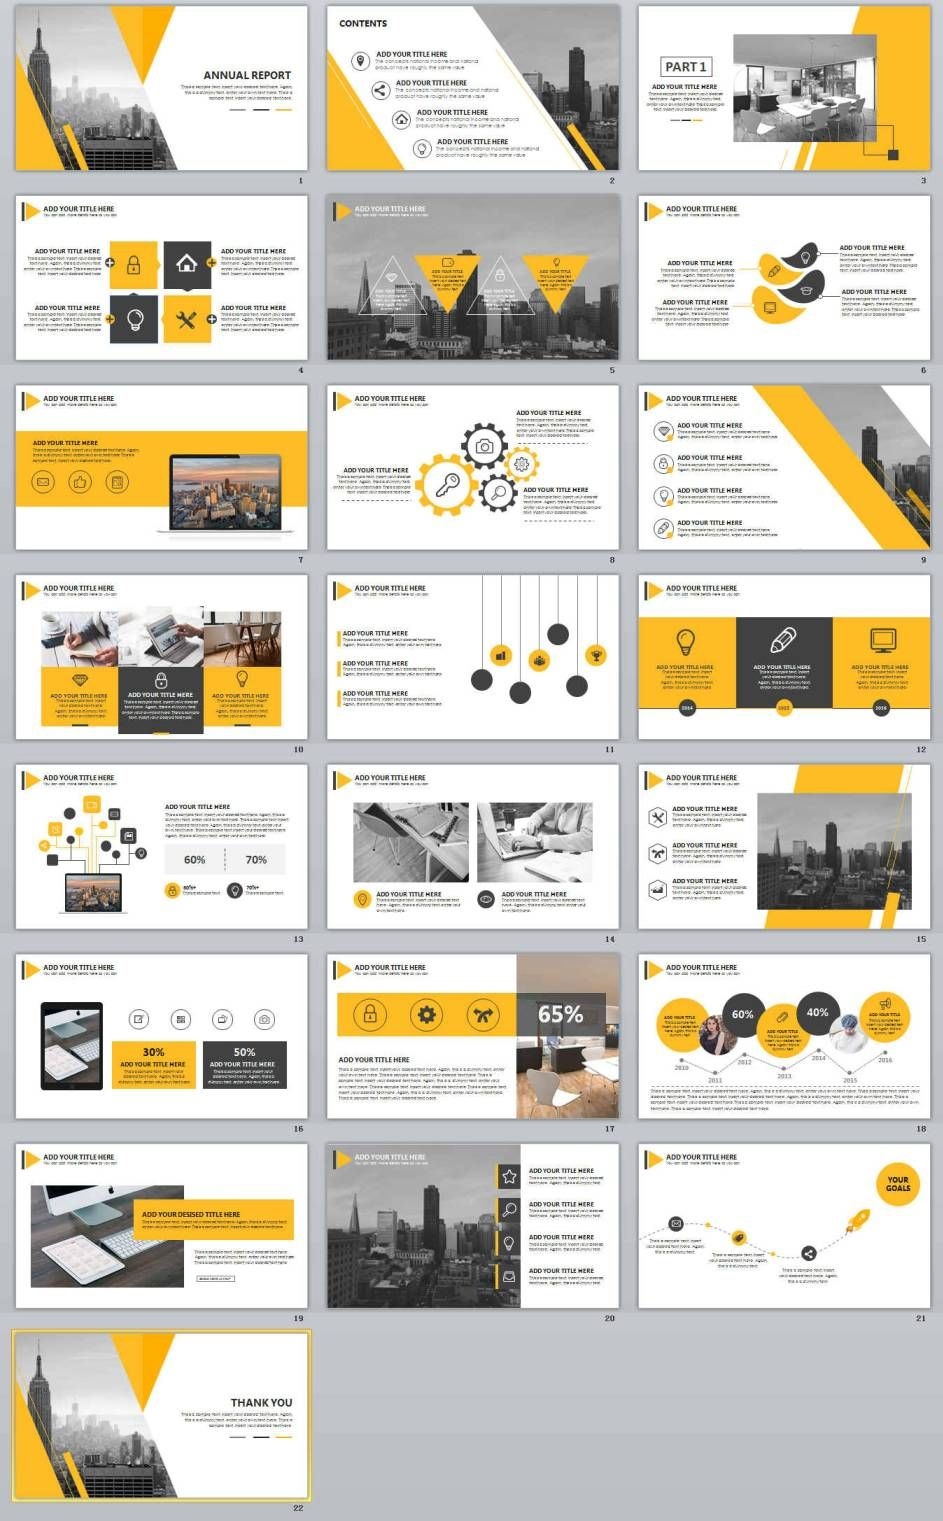 22 annual report creative powerpoint template creative powerpoint 22 annual report creative powerpoint template powerpoint templates and keynote templates toneelgroepblik Image collections